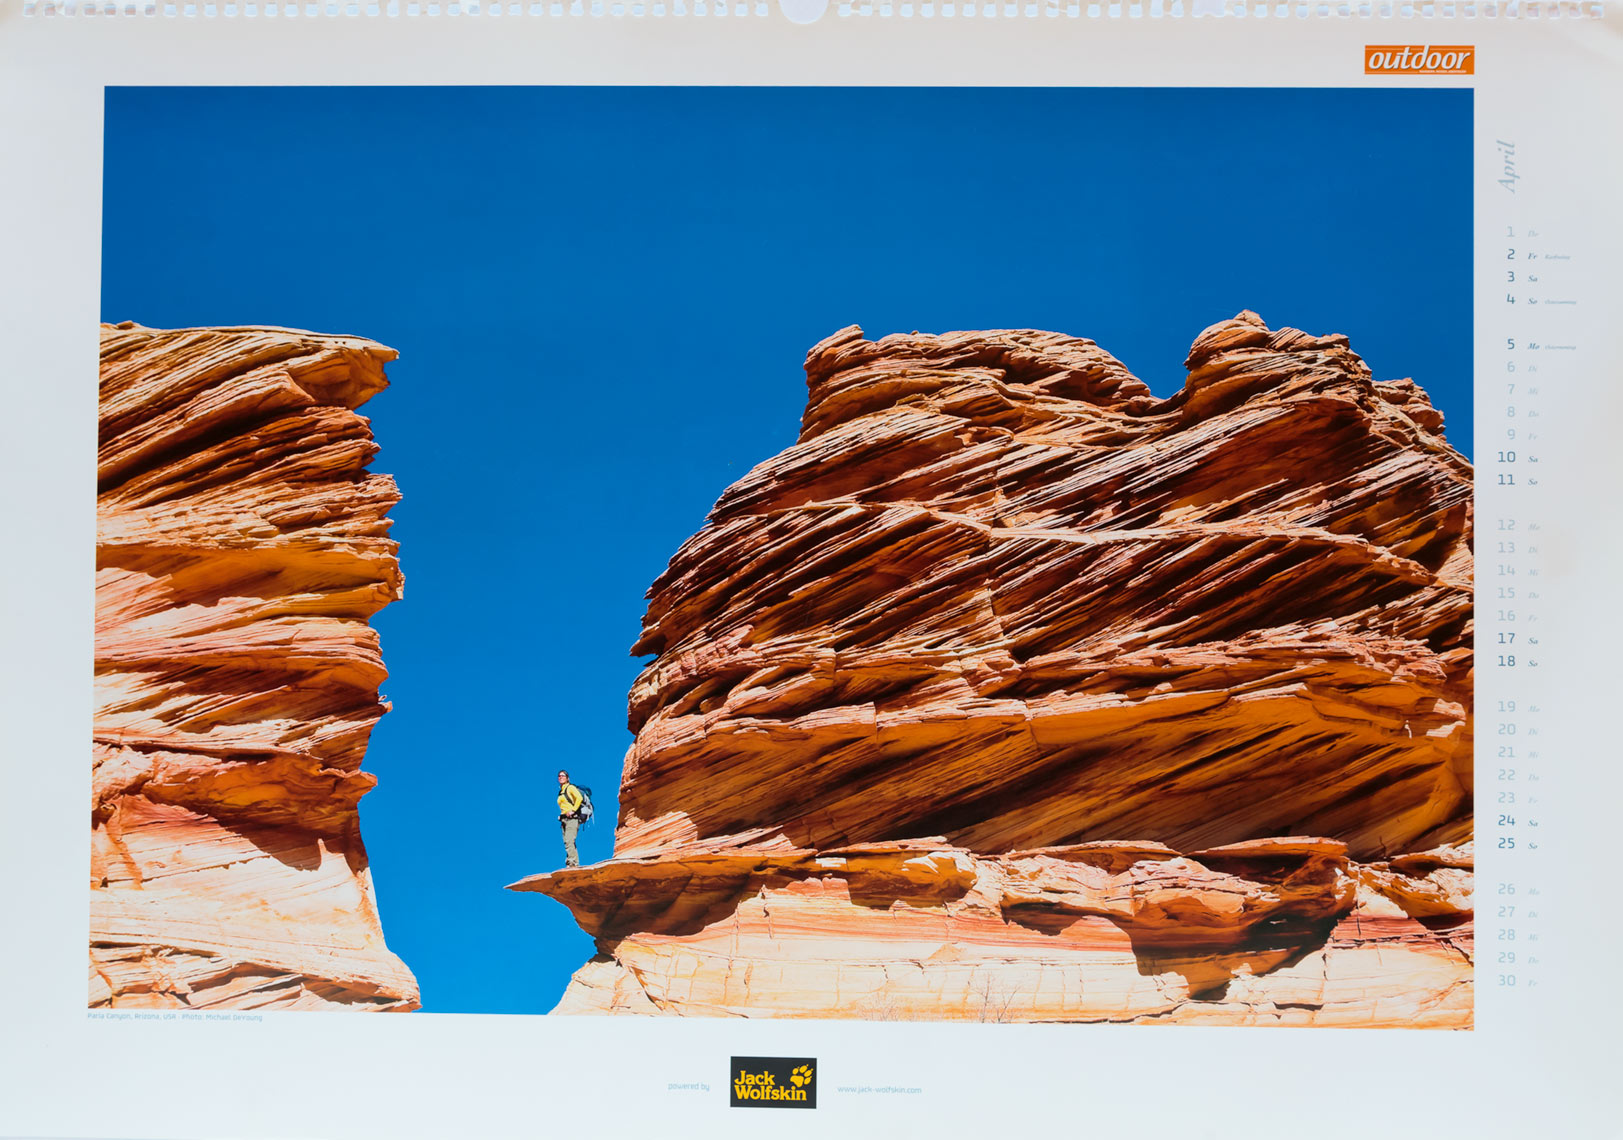 OUTDOOR-Magazin-Calendar-Coyote-Buttes-Hike